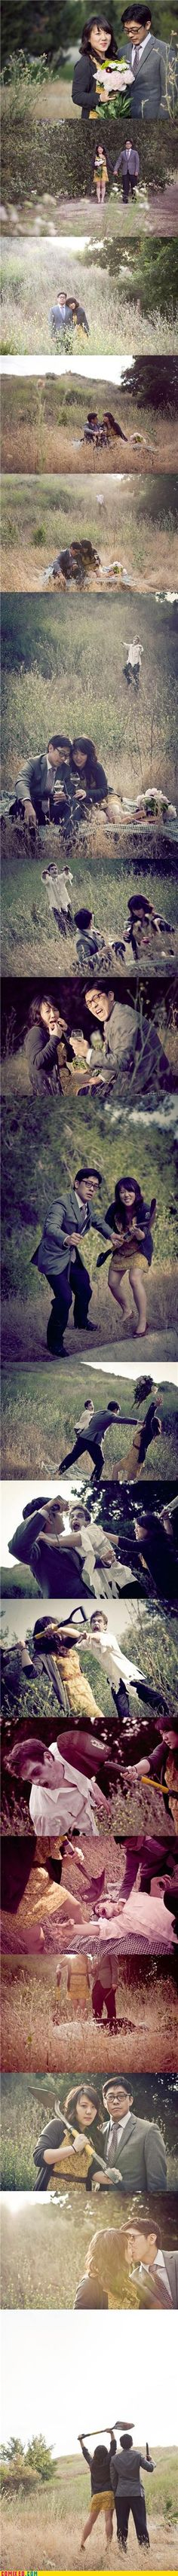 i don't normally pin engagement/wedding things, but good lord, this is the cutest thing in the world.